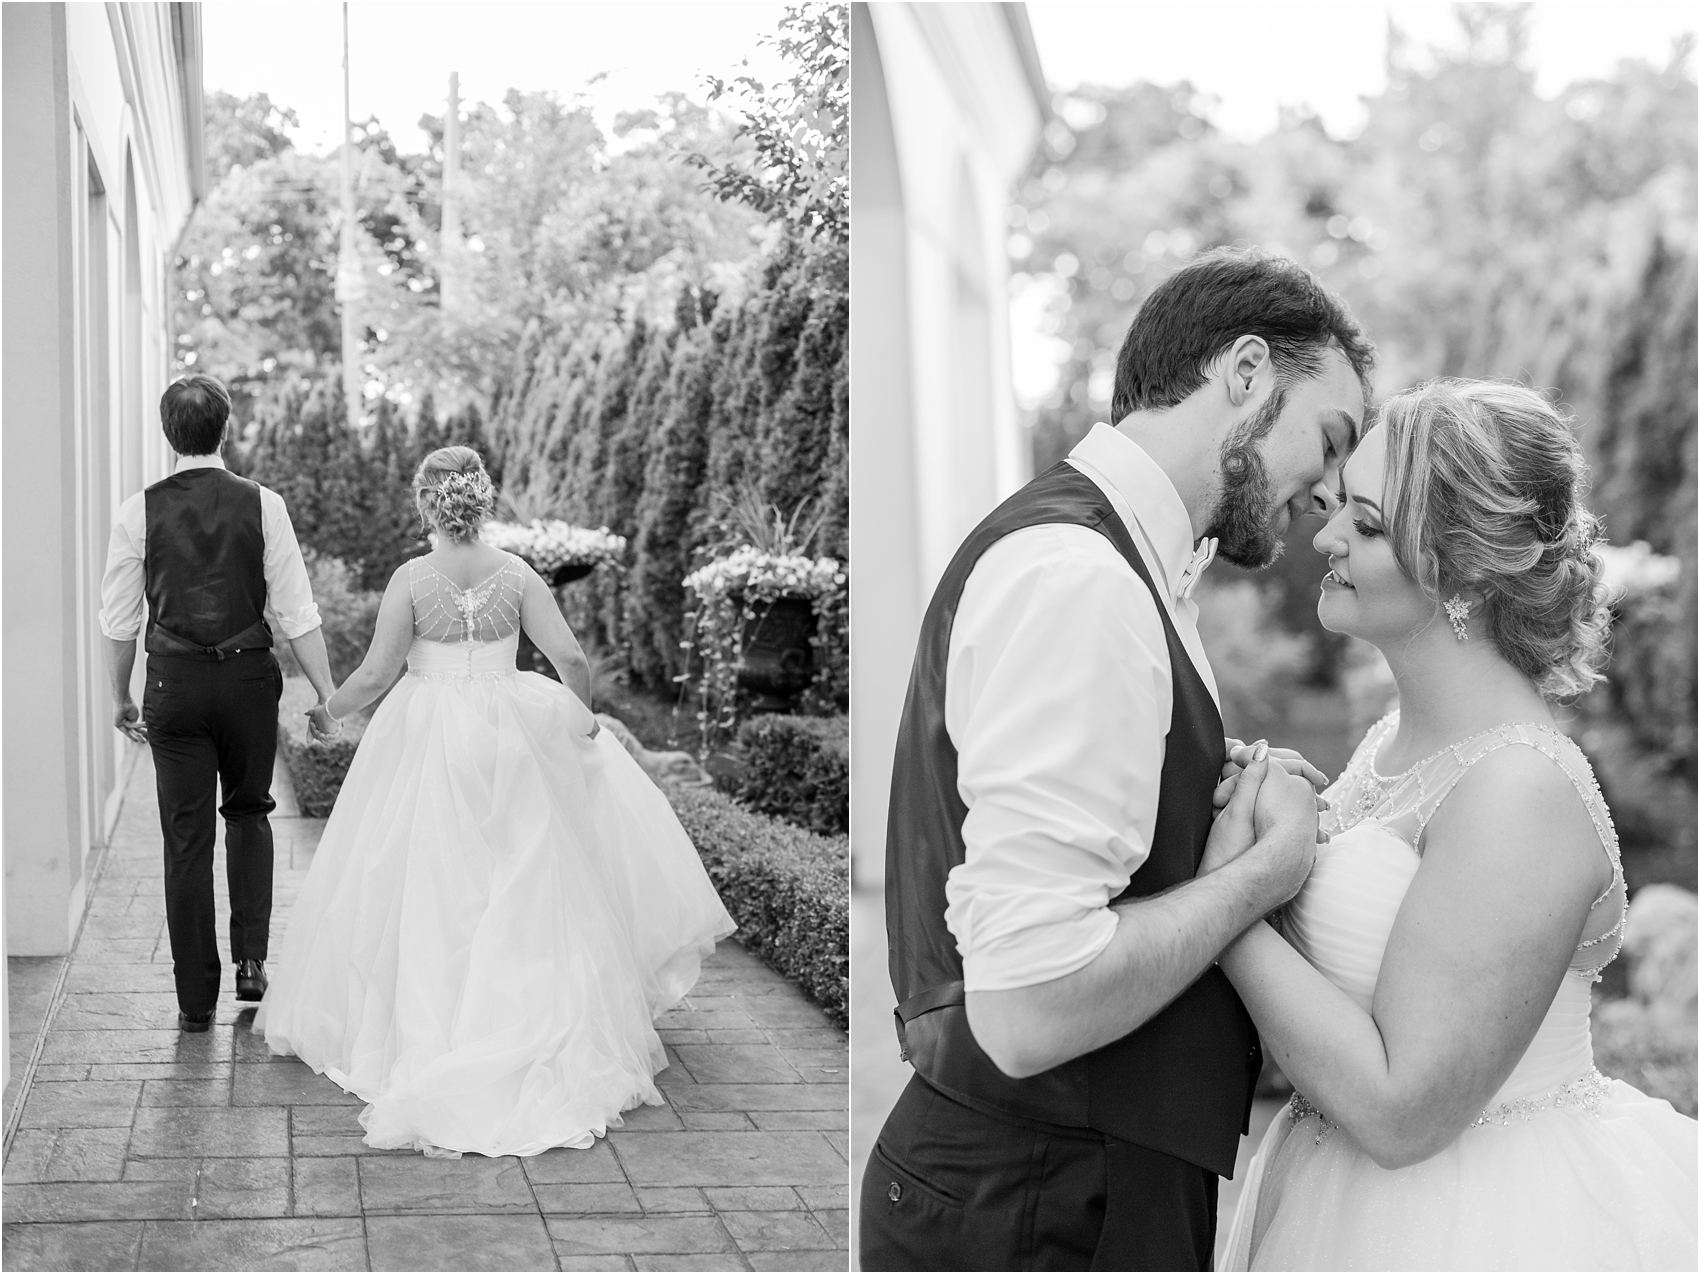 lord-of-the-rings-inspired-wedding-photos-at-crystal-gardens-in-howell-mi-by-courtney-carolyn-photography_0105.jpg